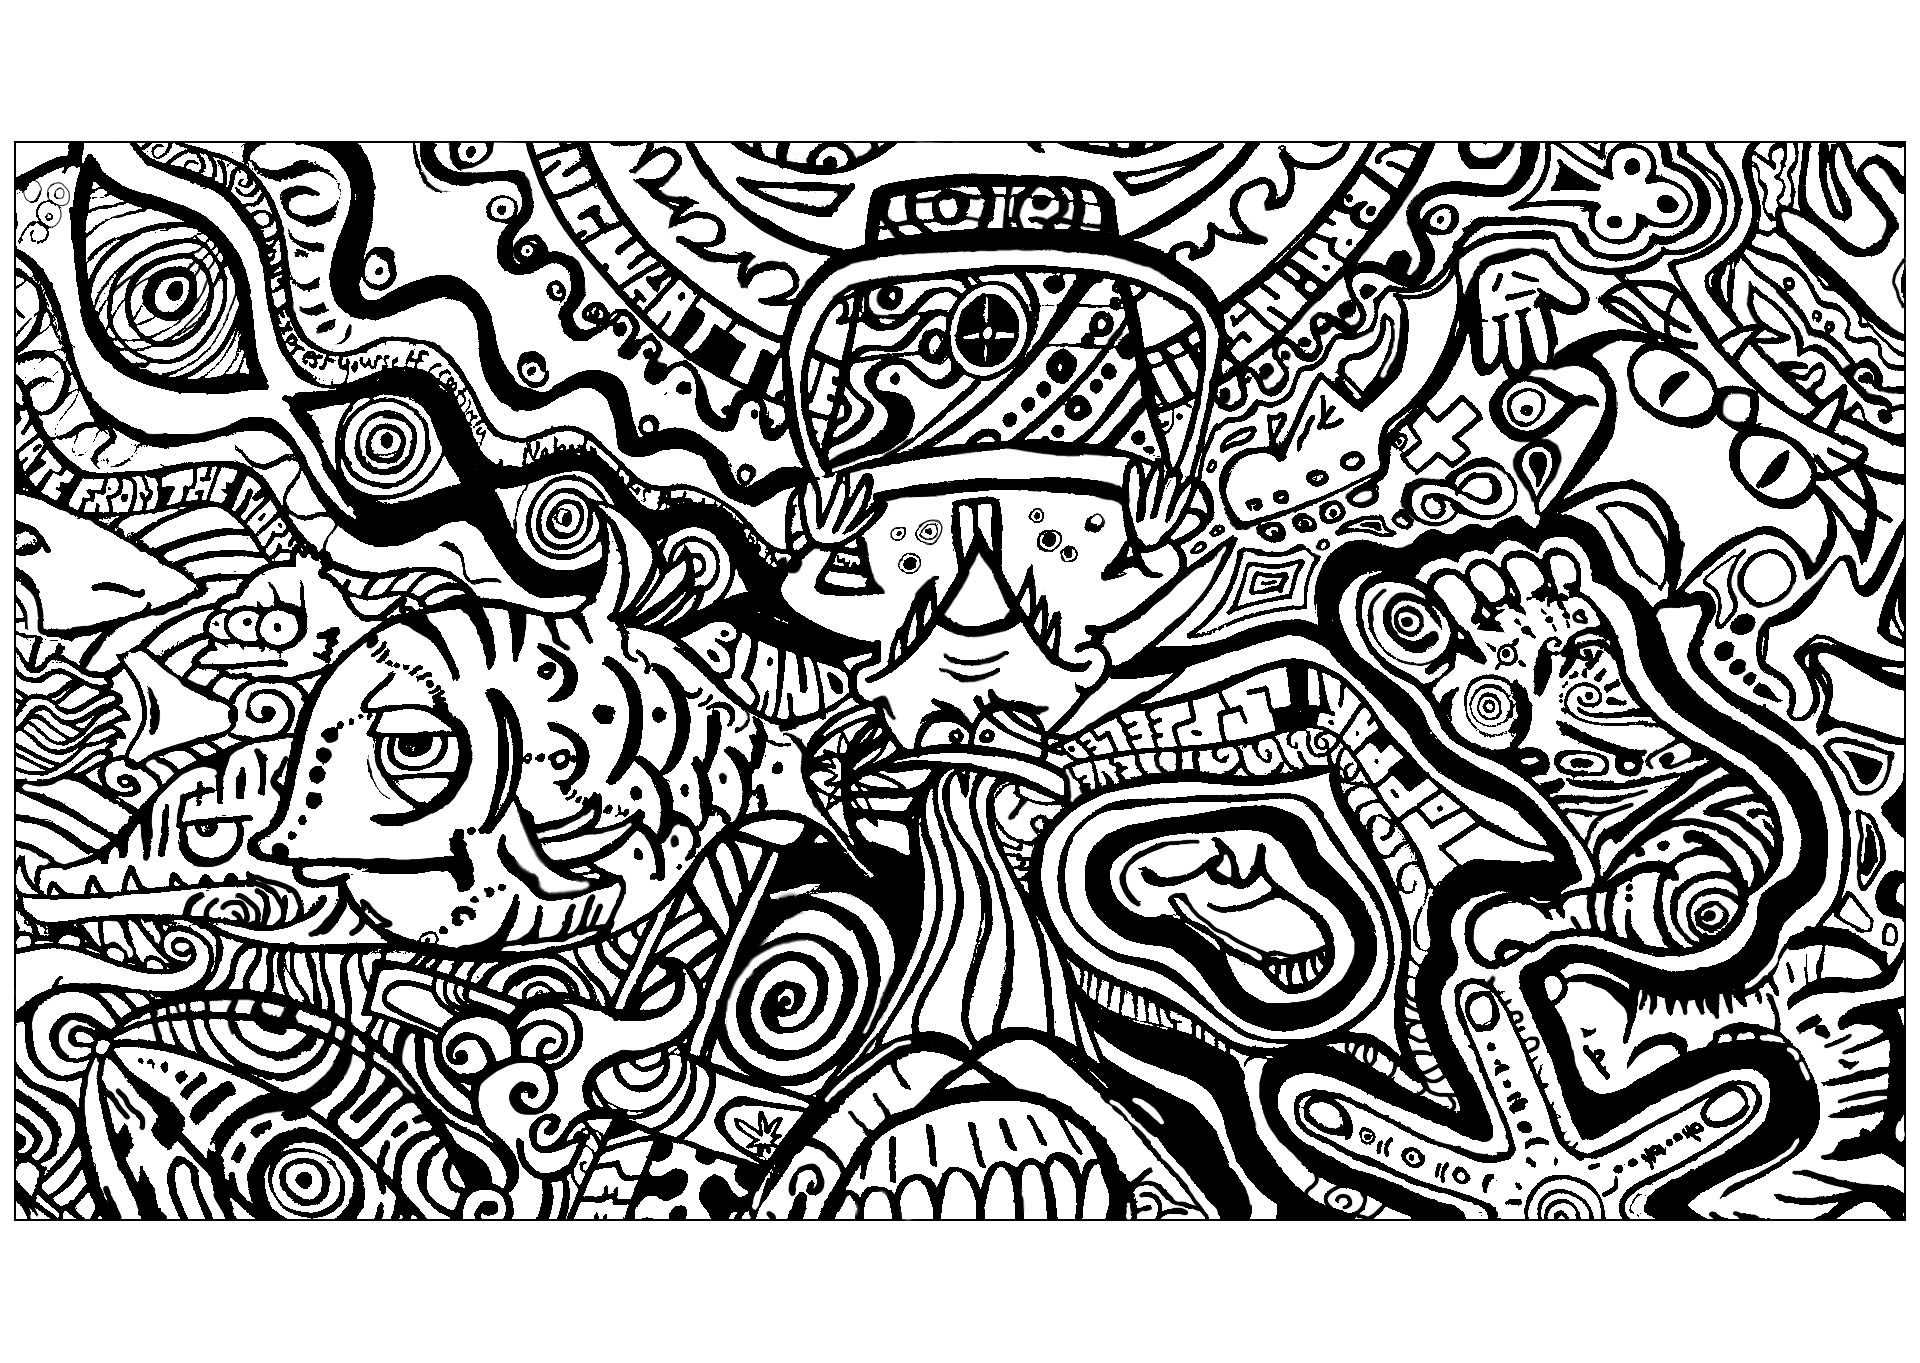 Psychedelic drawing with different subjects, including a feet and a fish !